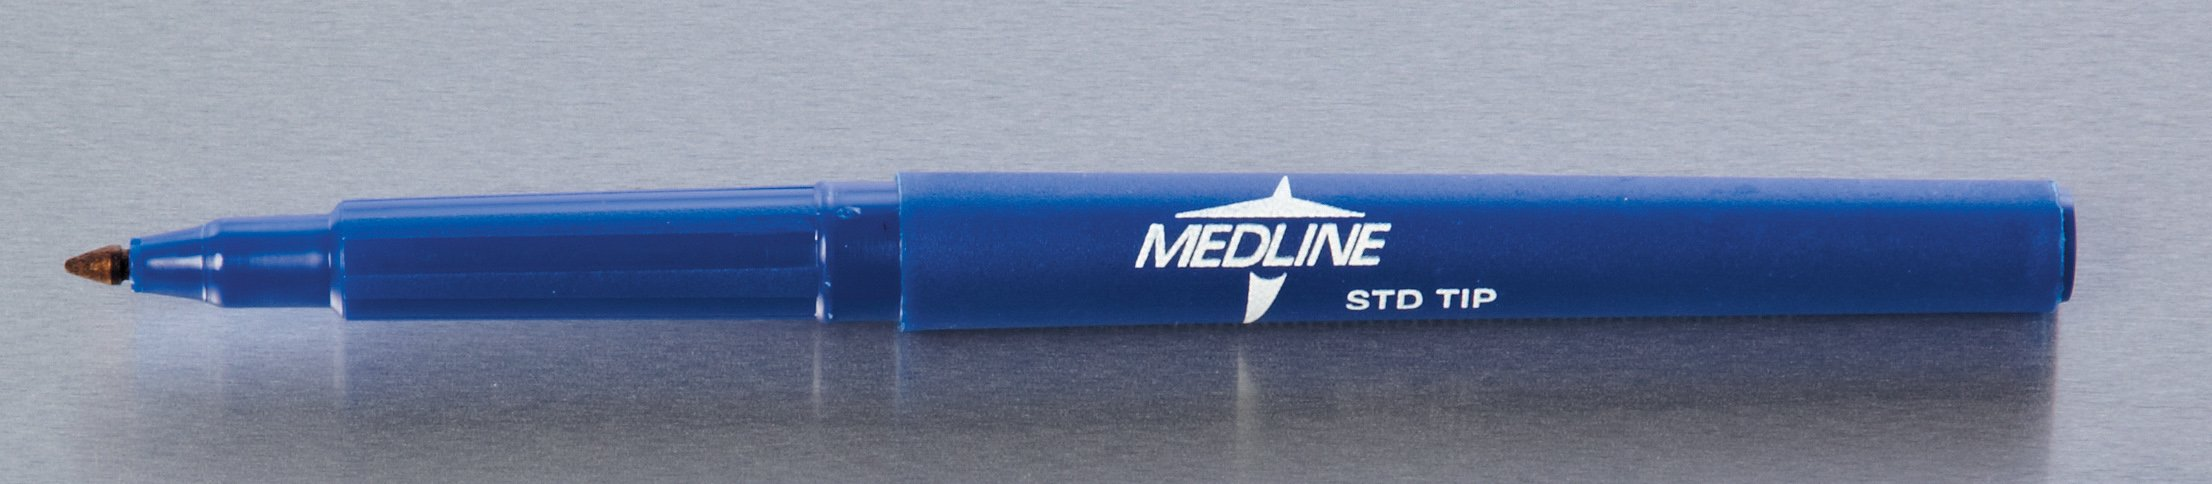 Medline DYNJSM02 Regular Tip Surgical Skin Markers with Ruler and Labels, Sterile (Pack of 50)